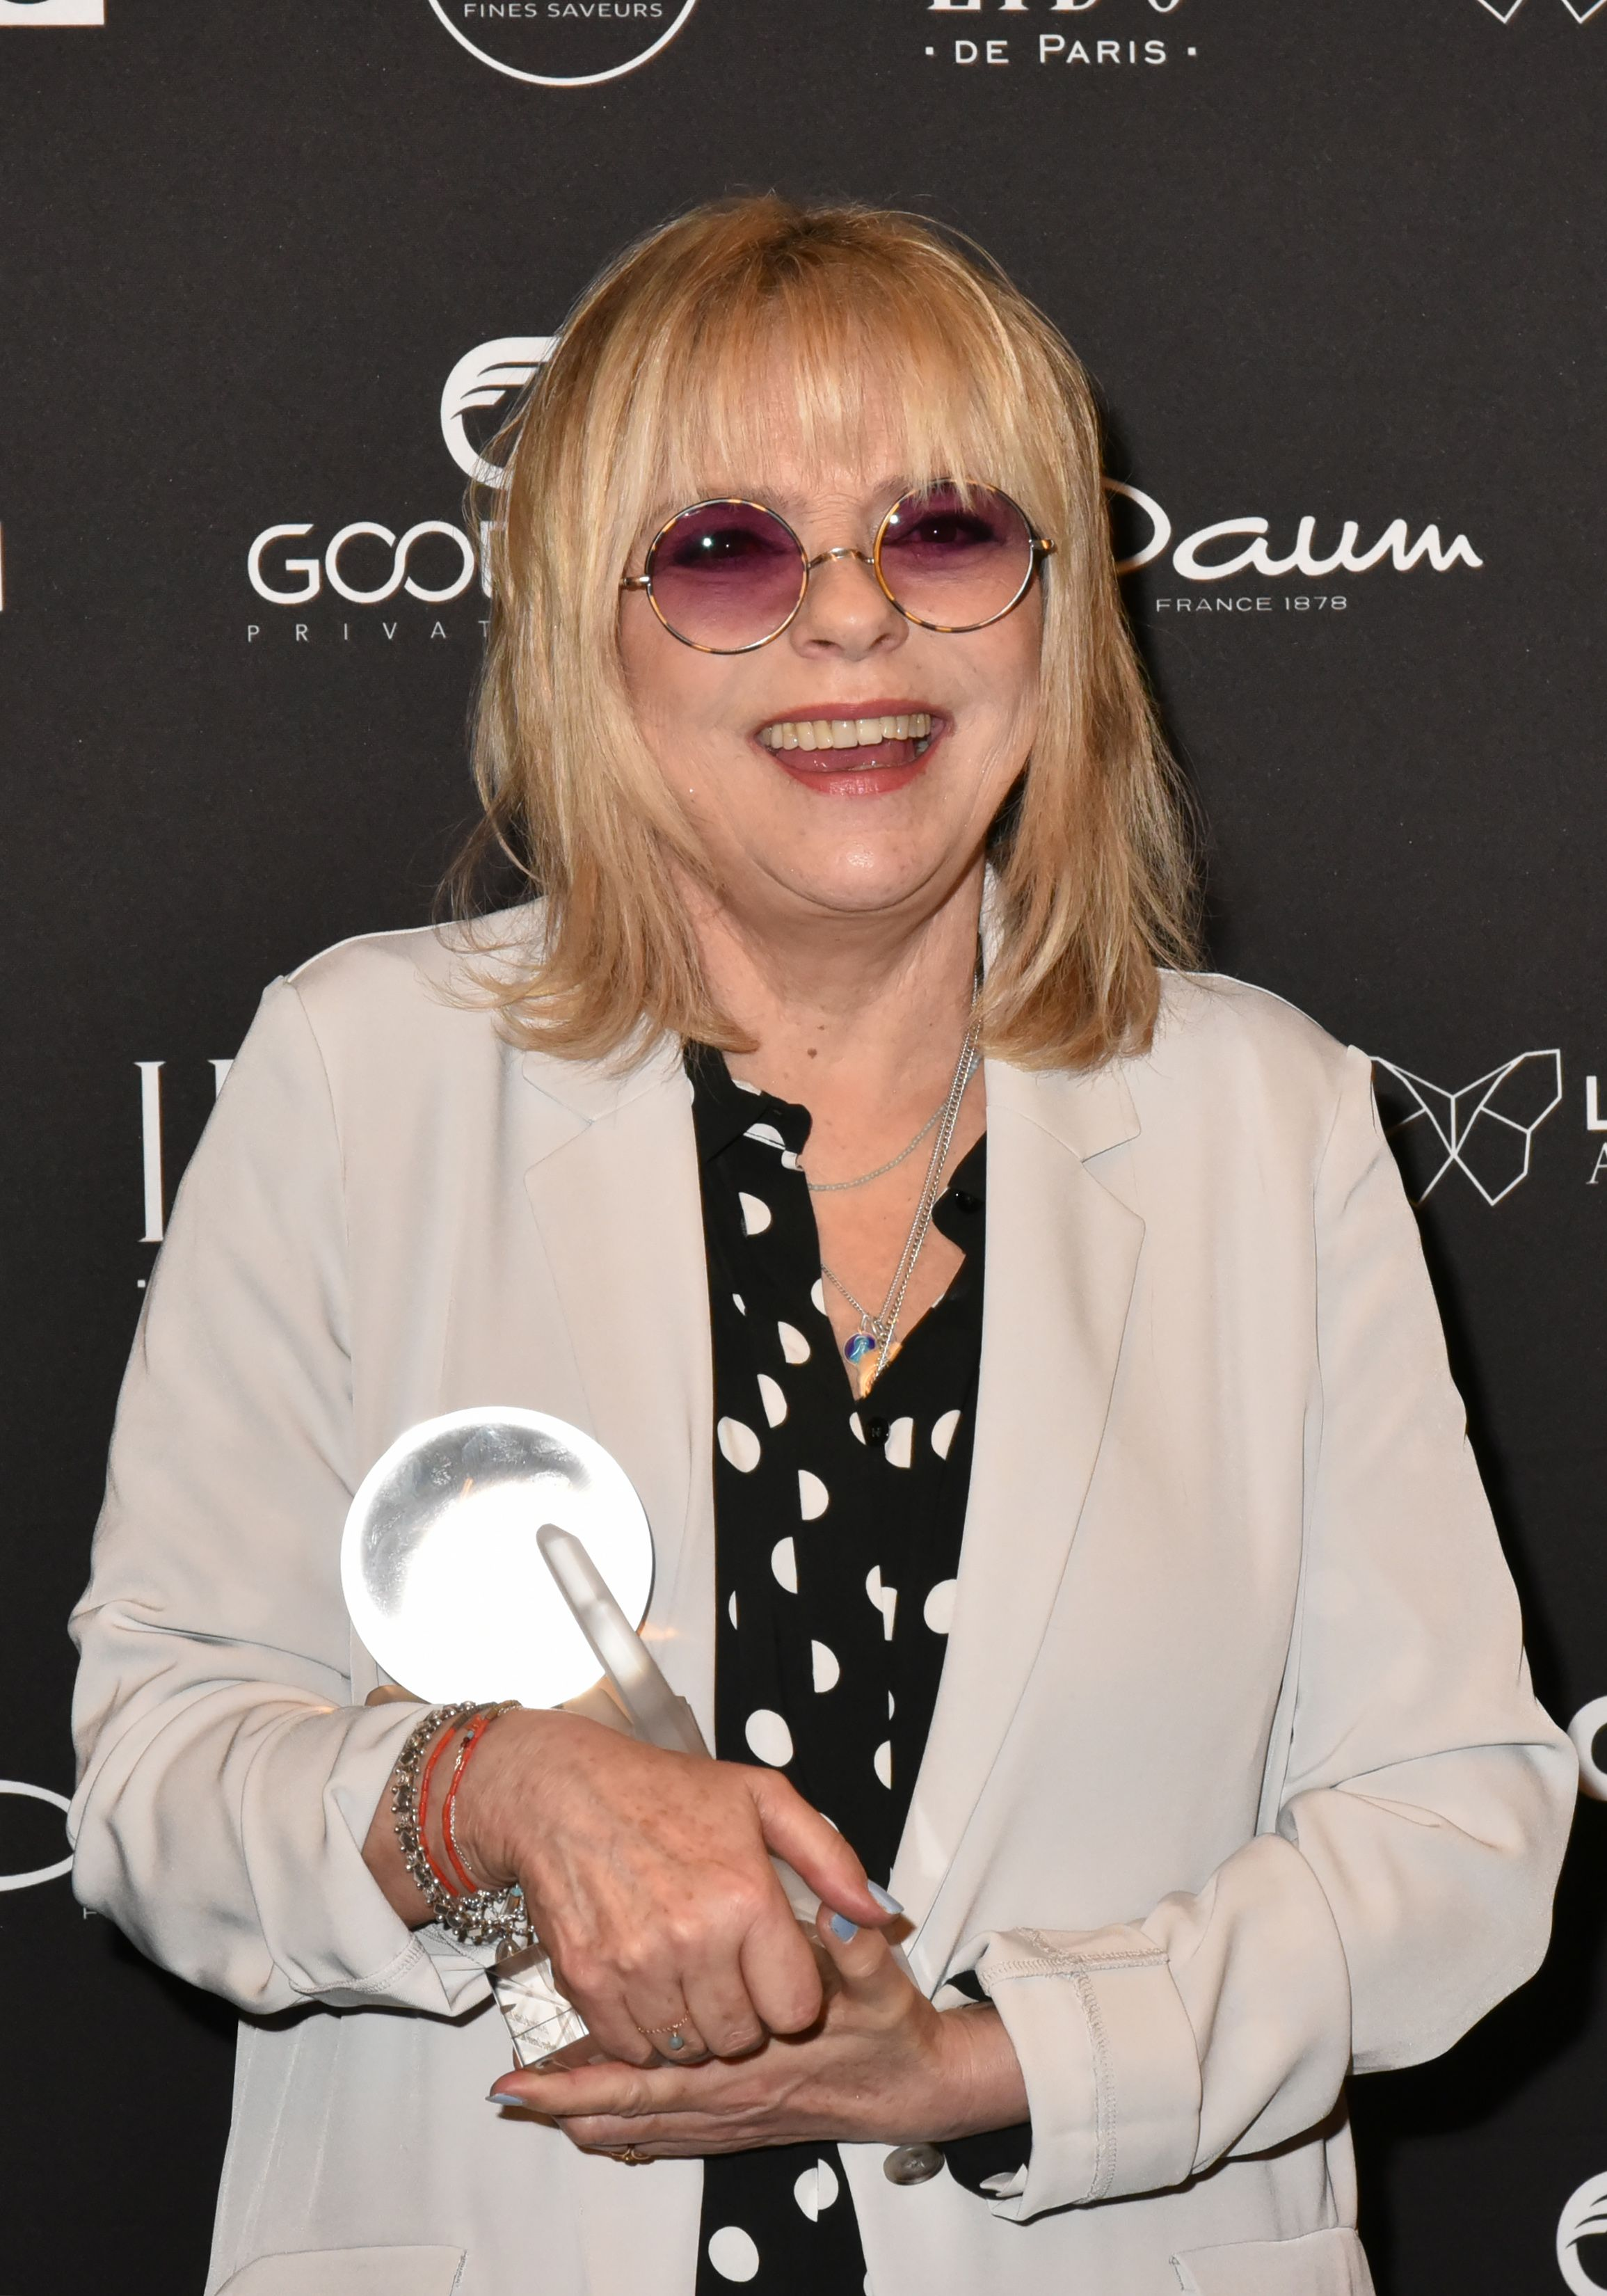 France Gall assiste aux Globes de Cristal Awards 11e cérémonie au Lido le 30 janvier 2017 à Paris, France. | Photo : Getty Images